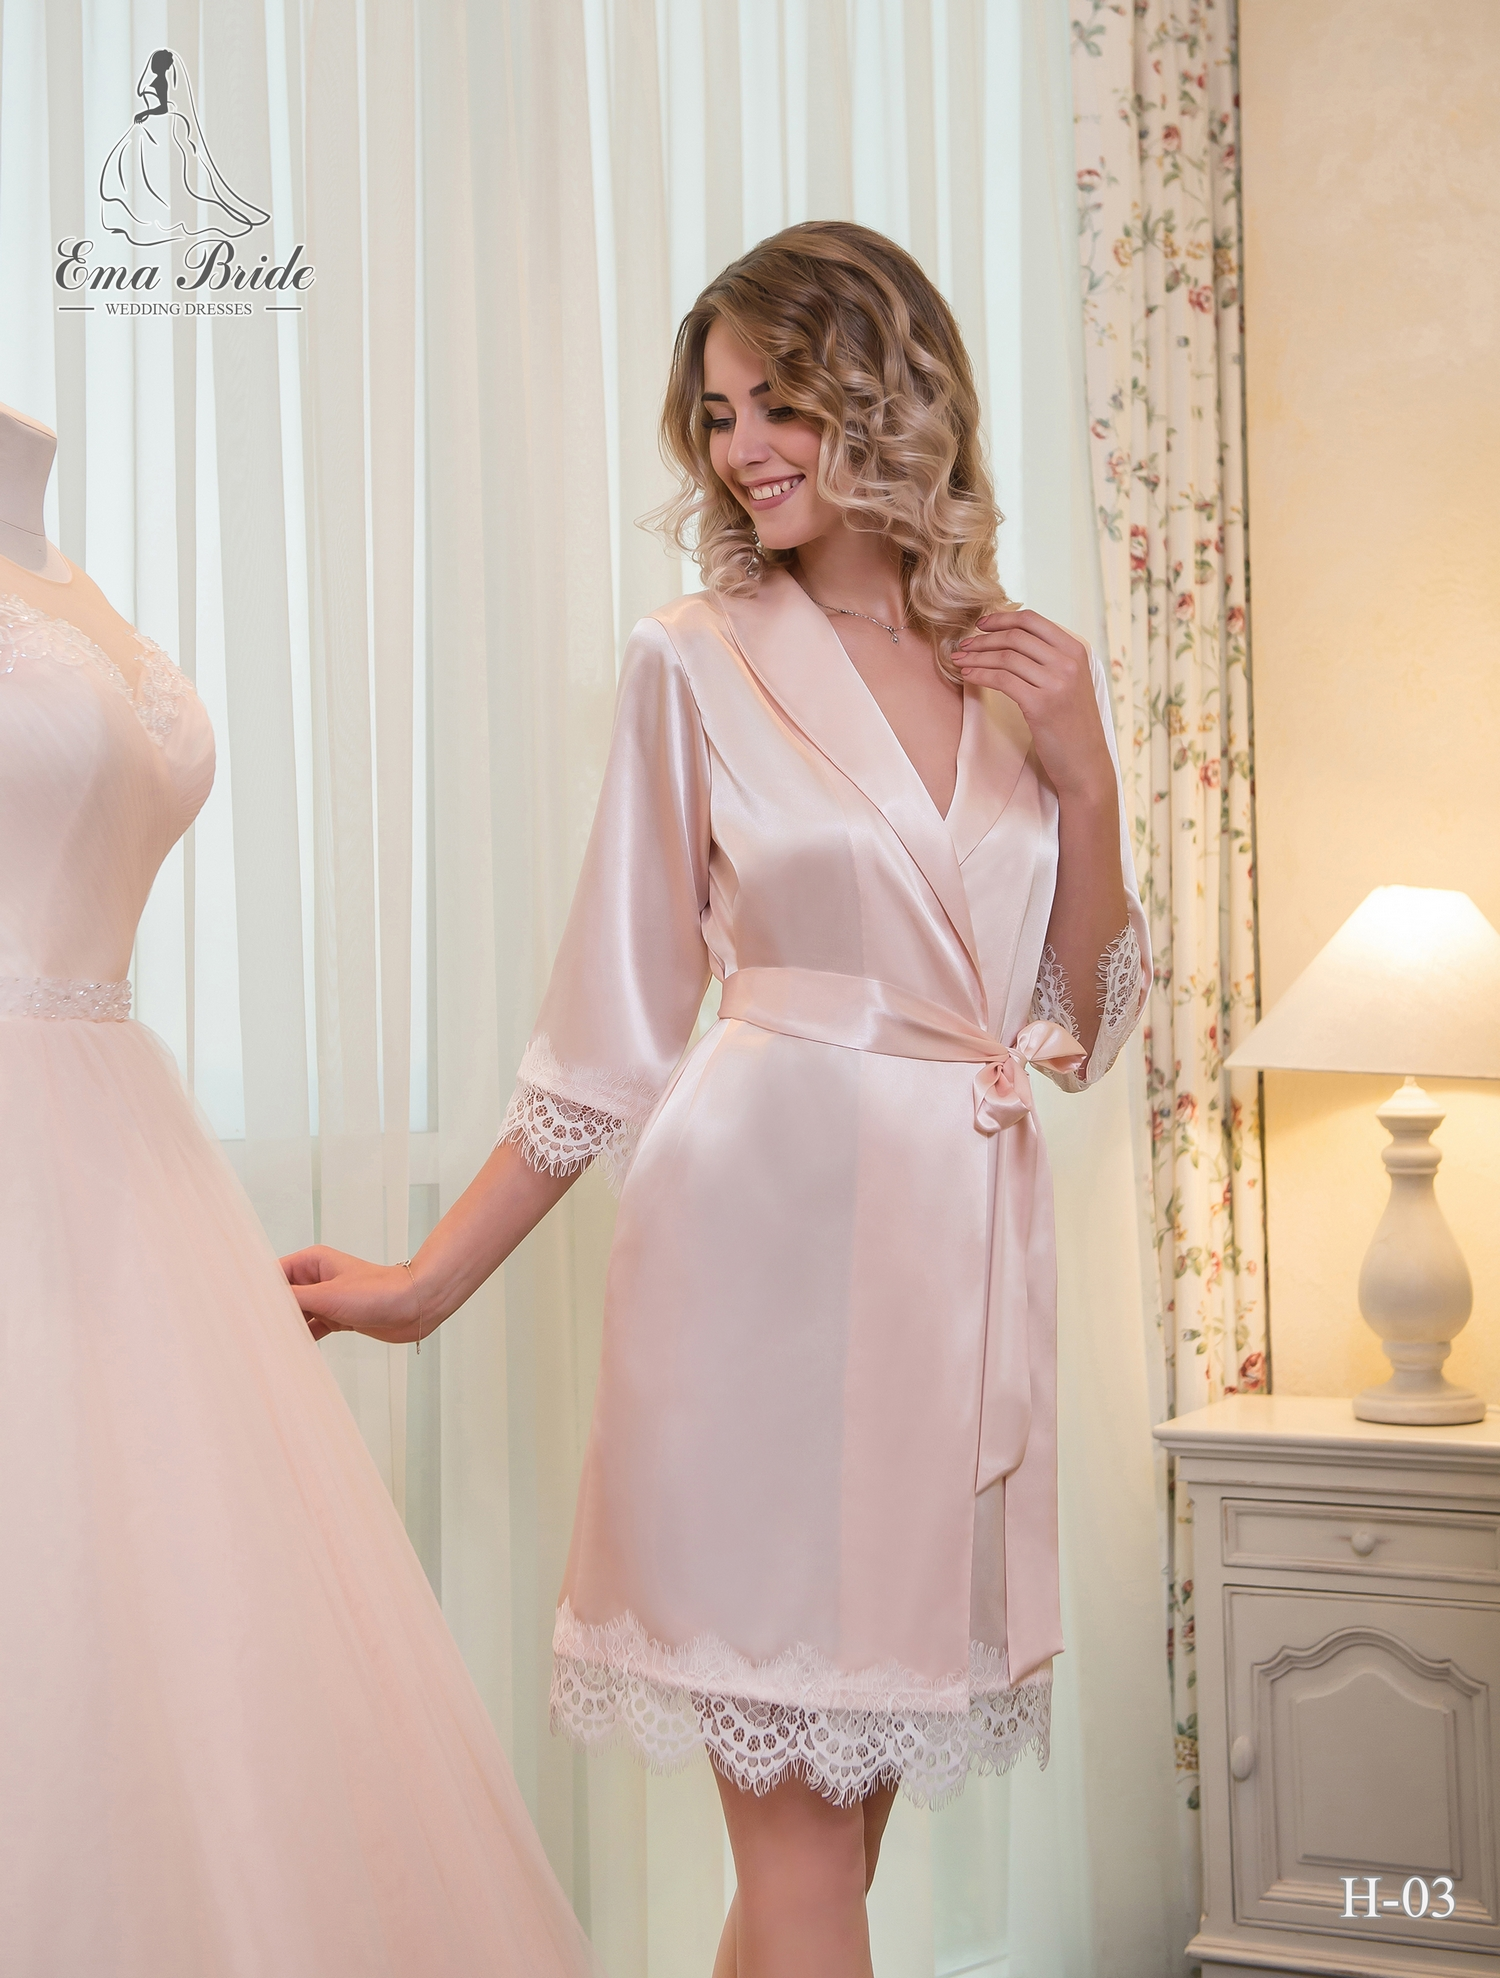 Satin peignoir for a bride